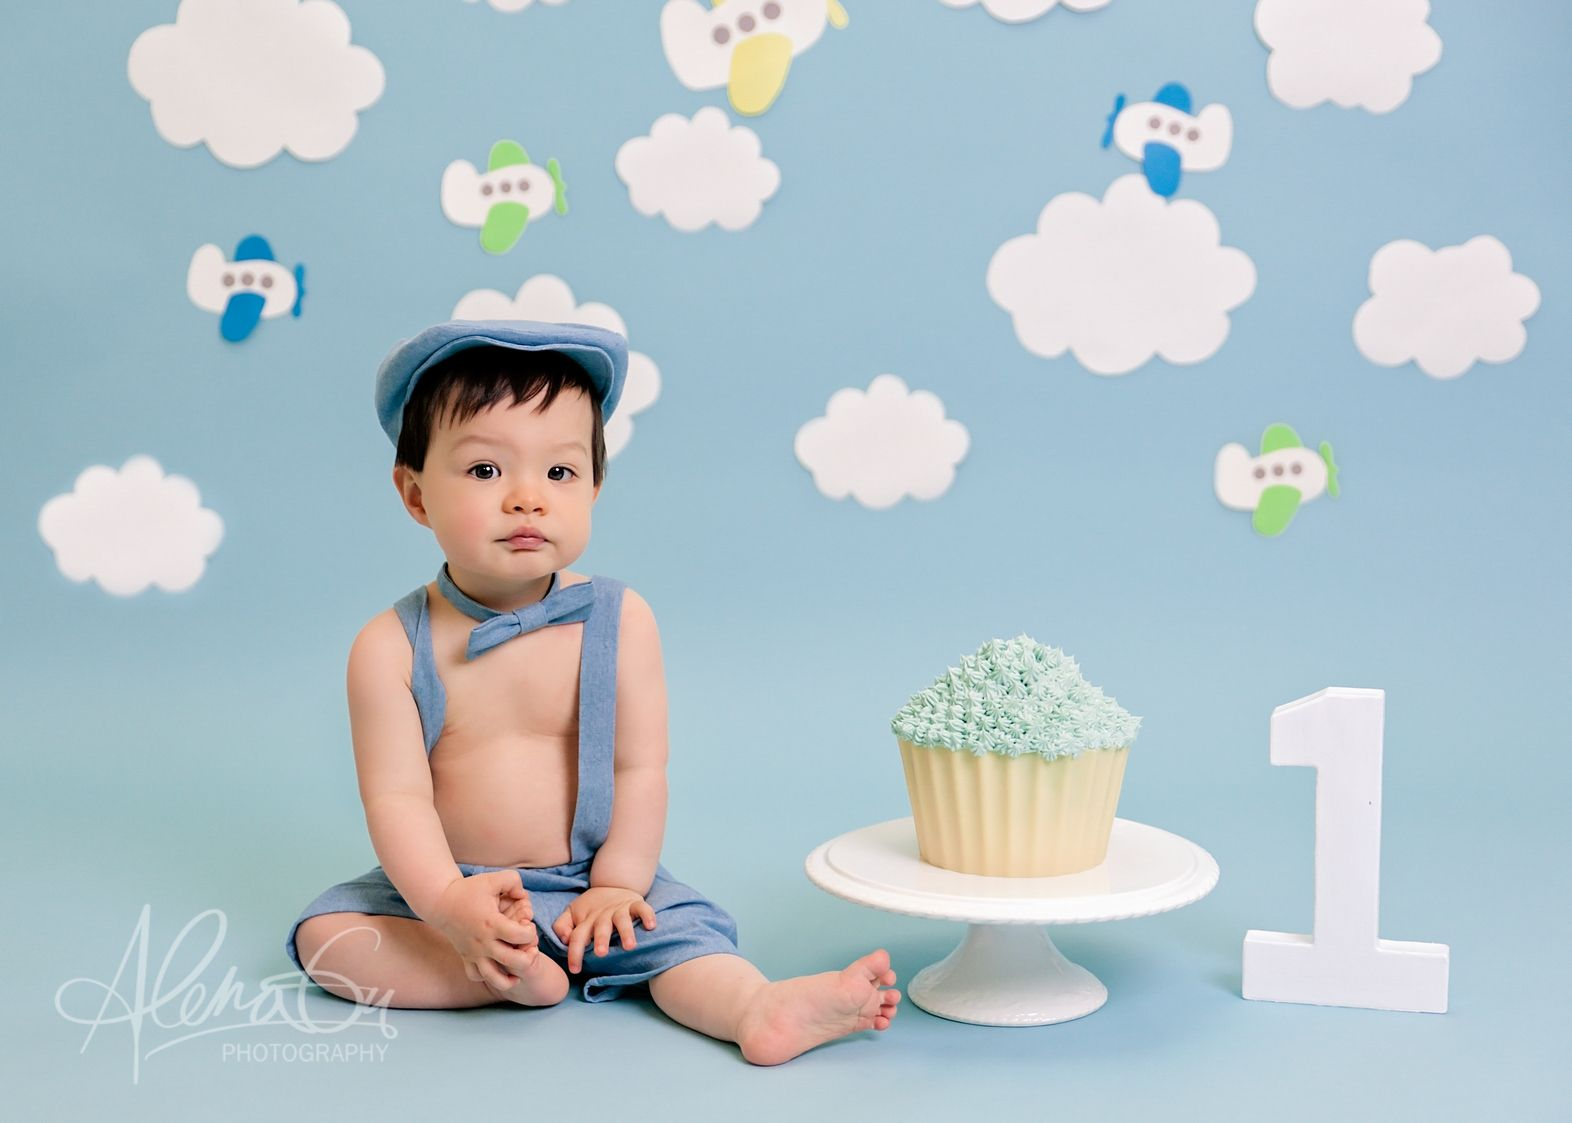 Cake Smash Baby Photography Sessions Aylesbury Buckinghamshire